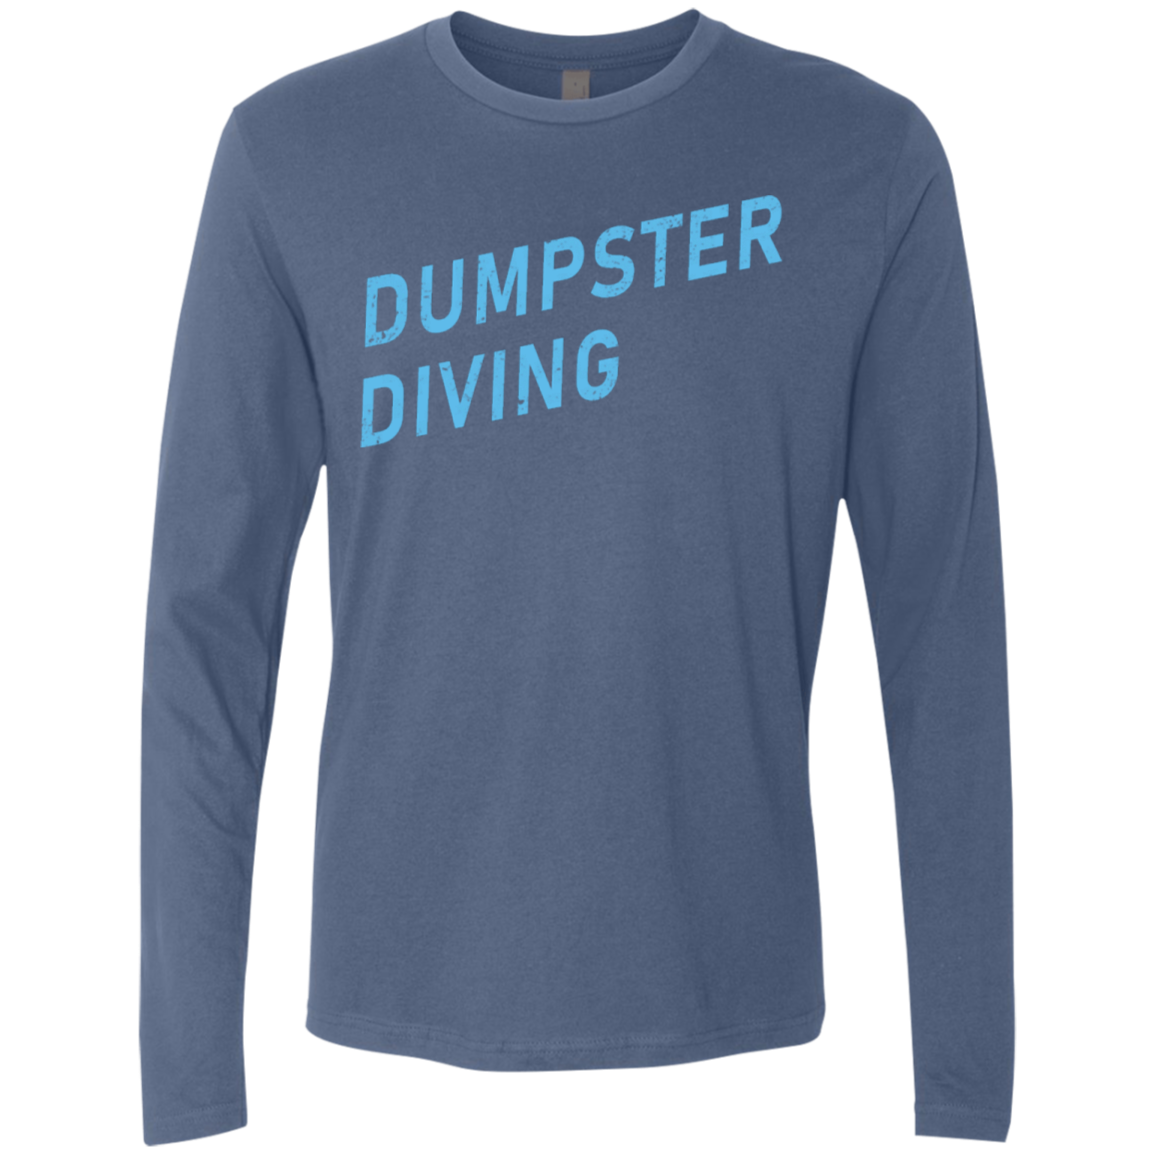 Dumpster Diving Men's Long Sleeve Tee